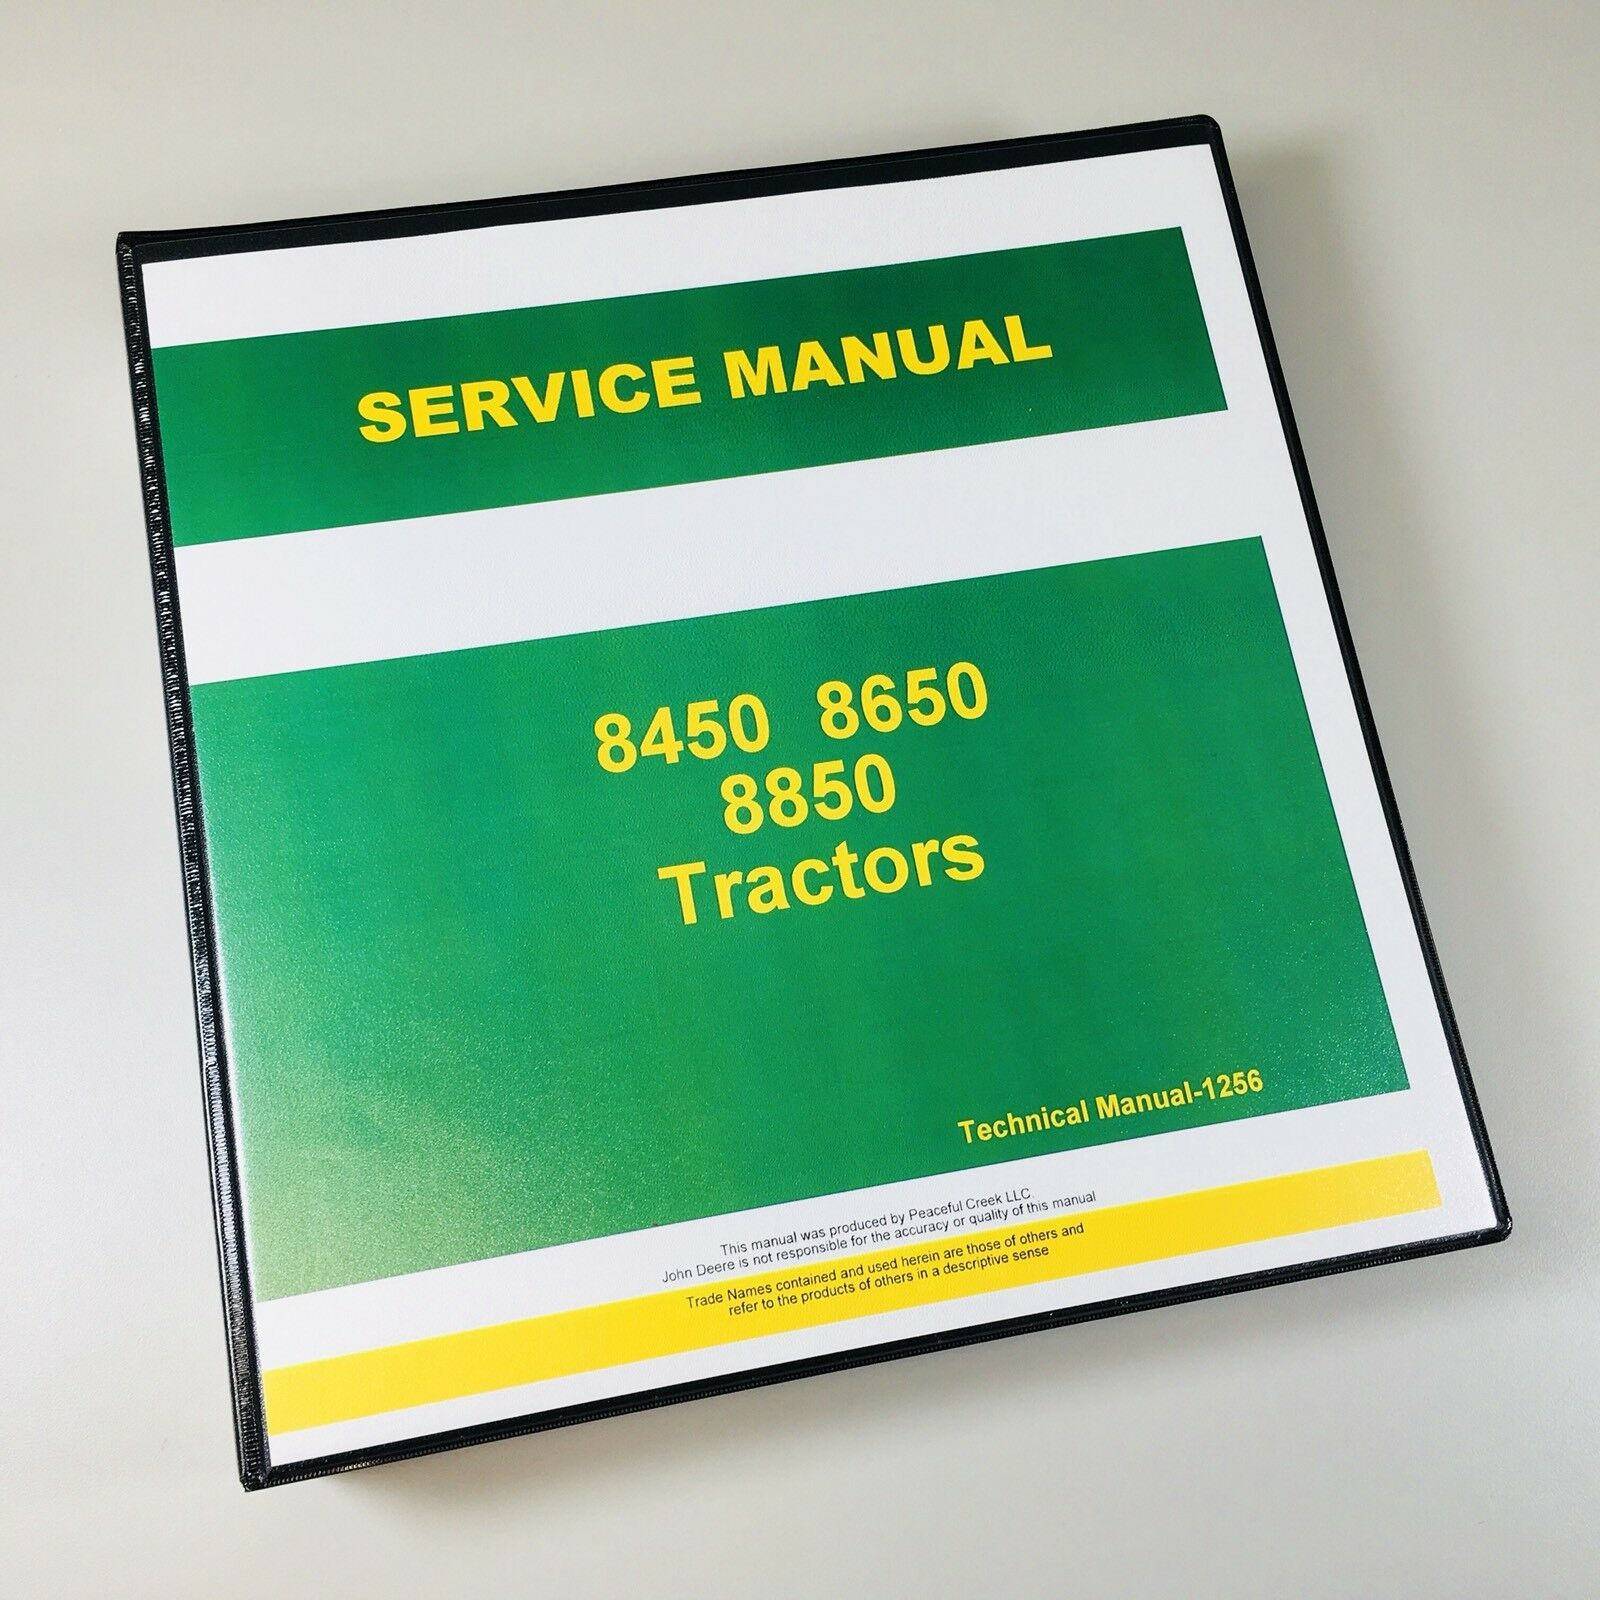 service testing manual for john deere 8450 8650 8850 tractor repair rh ebay com John Deere 8650 john deere 8450 service manual